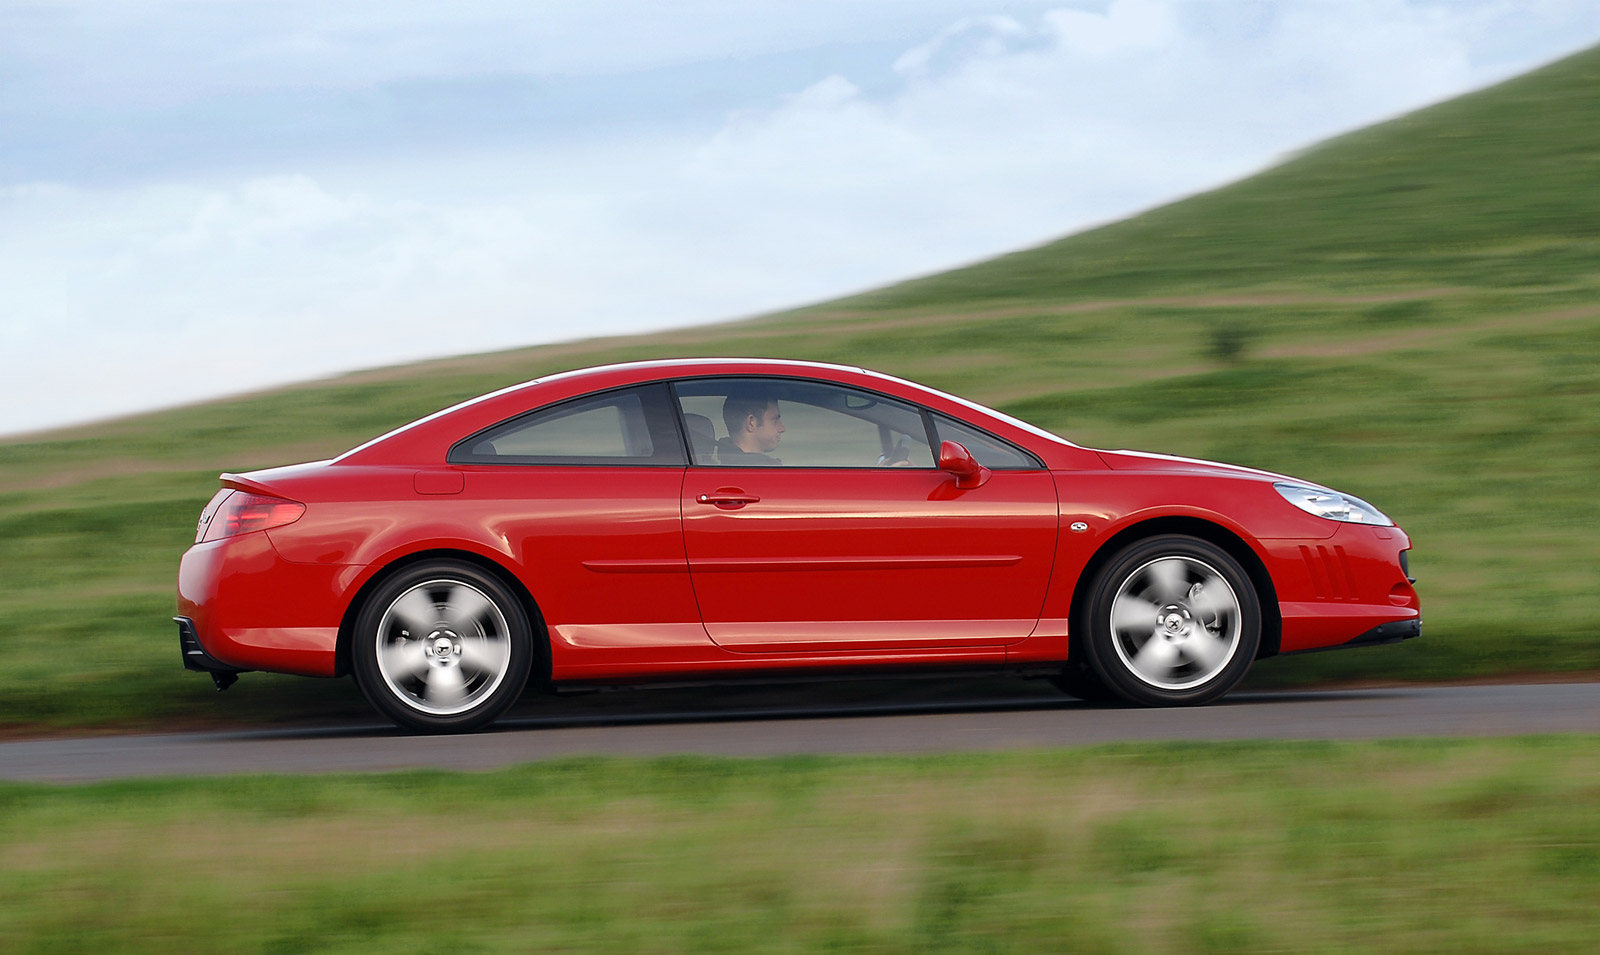 PEUGEOT 407 red